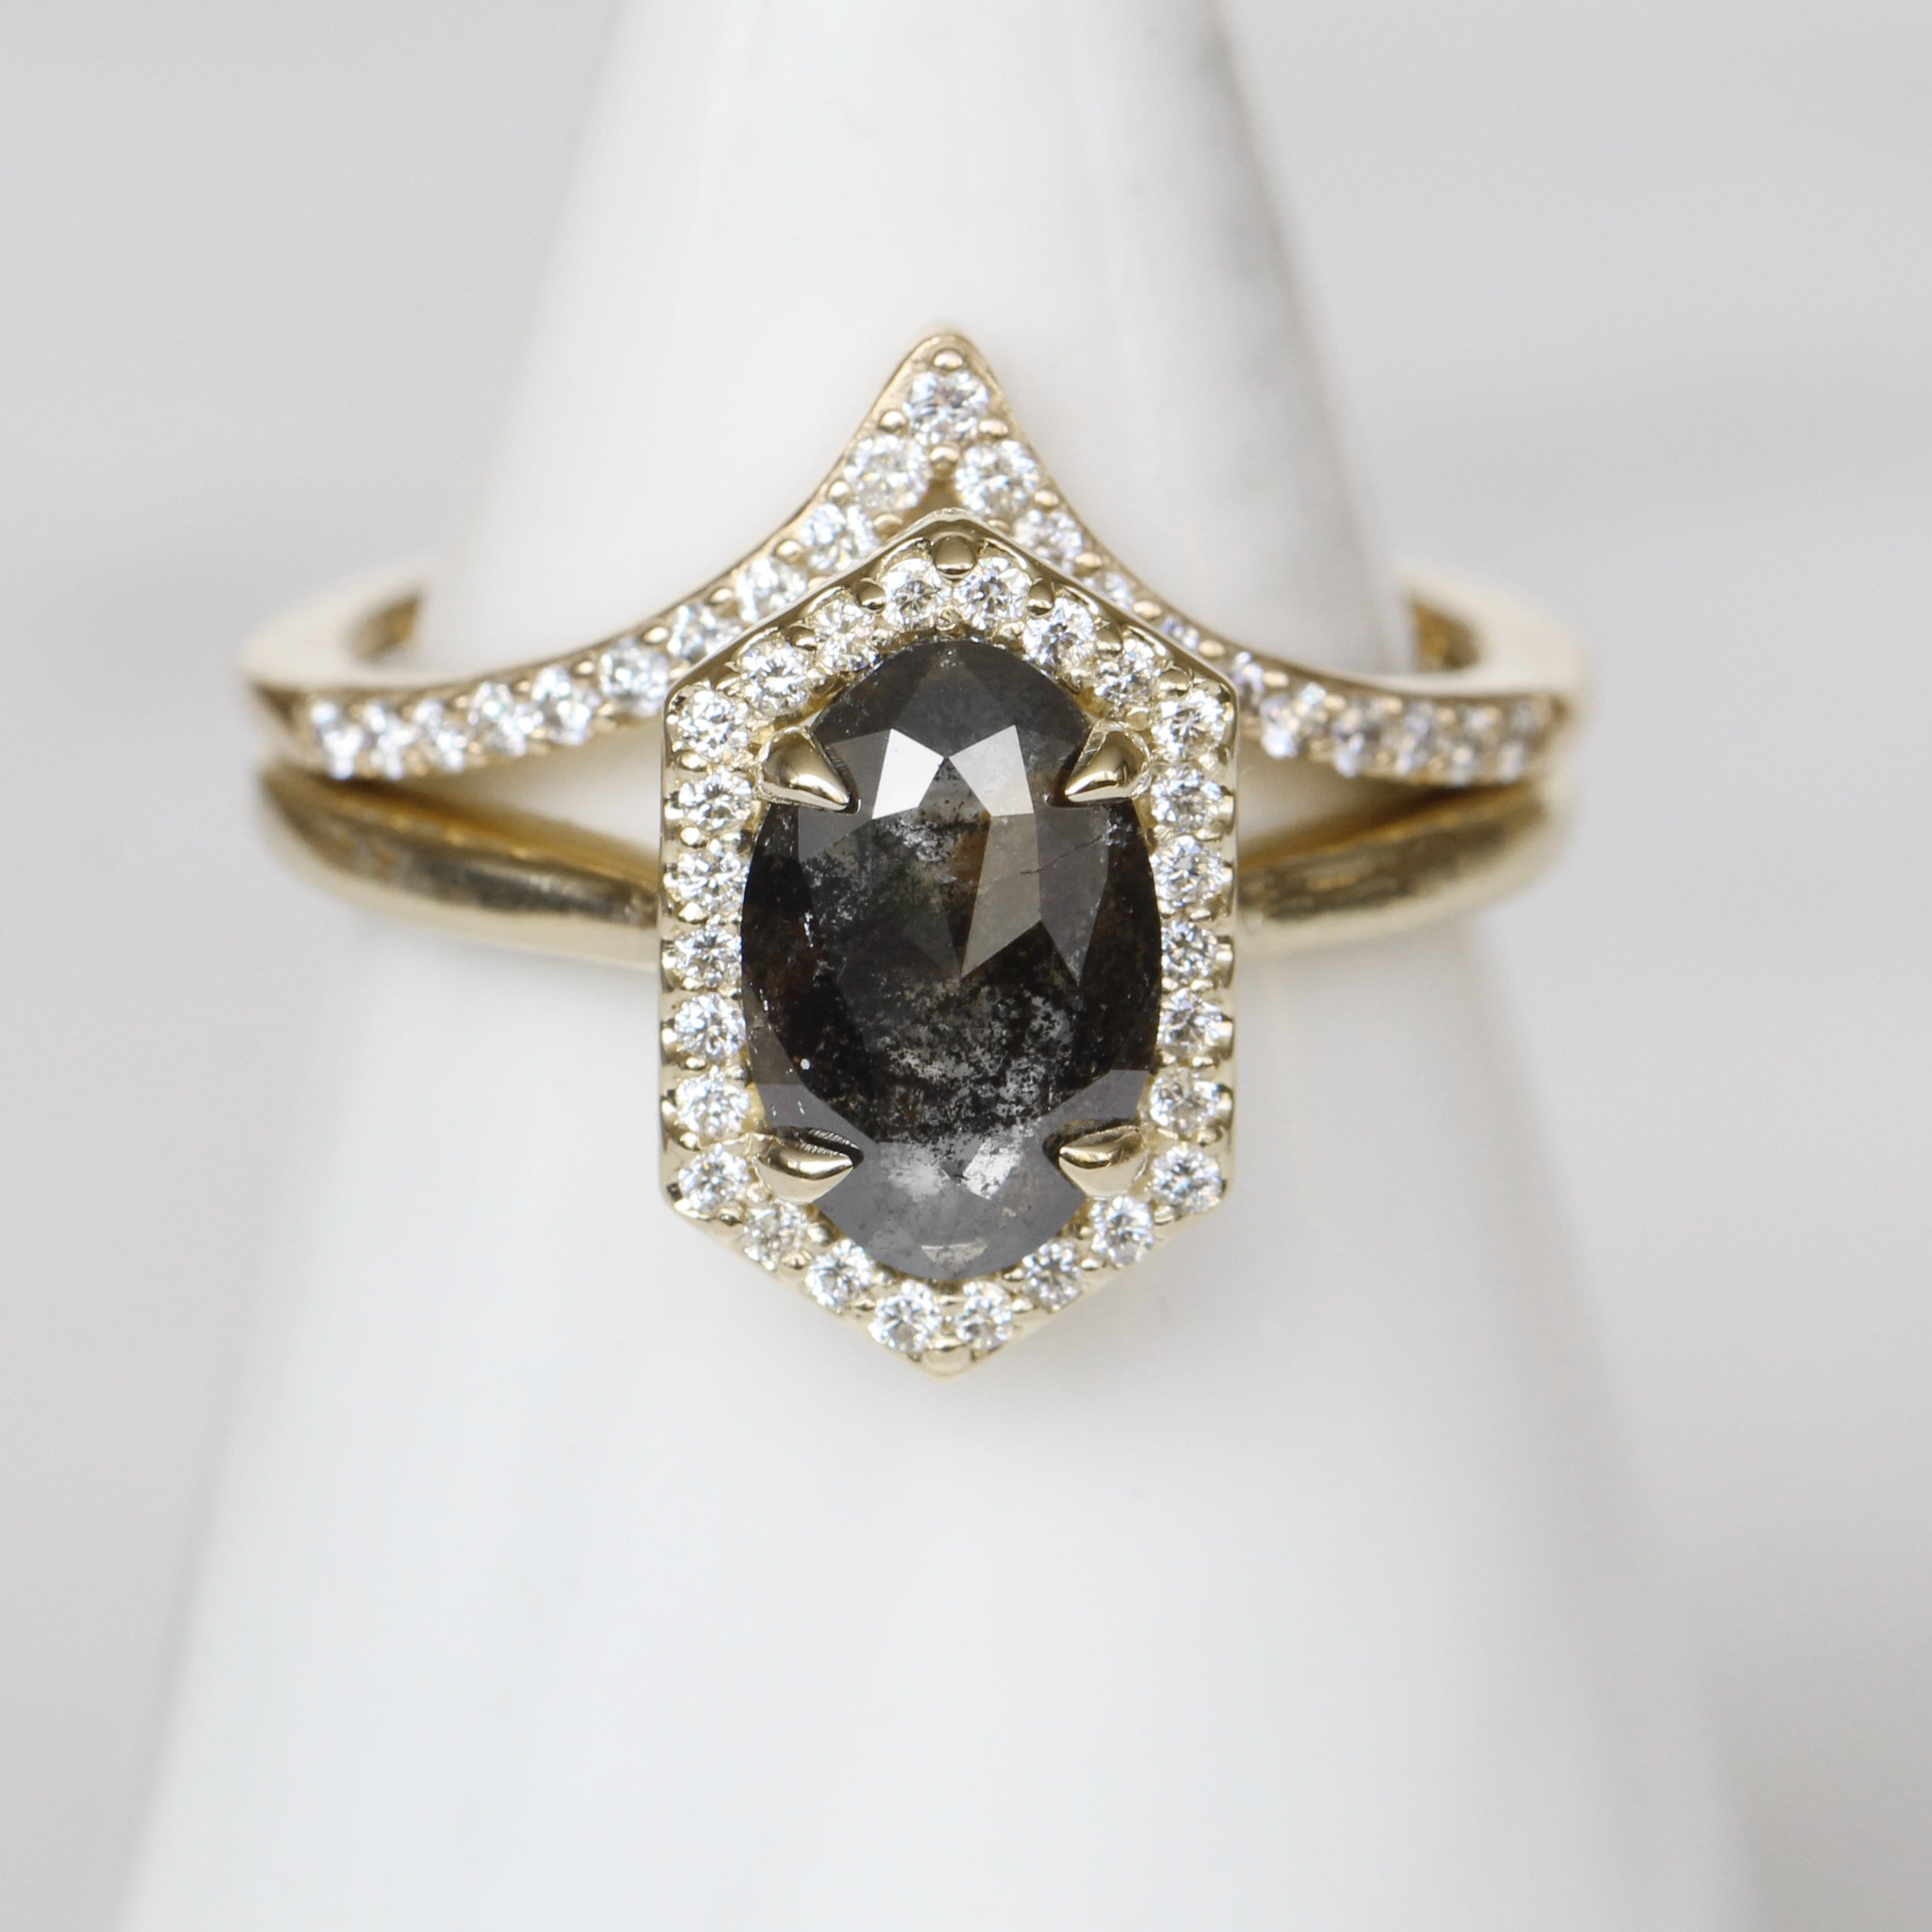 Etta Ring with a 1.06 carat rose cut oval celestial diamond white diamonds in 14k yellow gold - ready to size and ship - Celestial Diamonds ® by Midwinter Co.